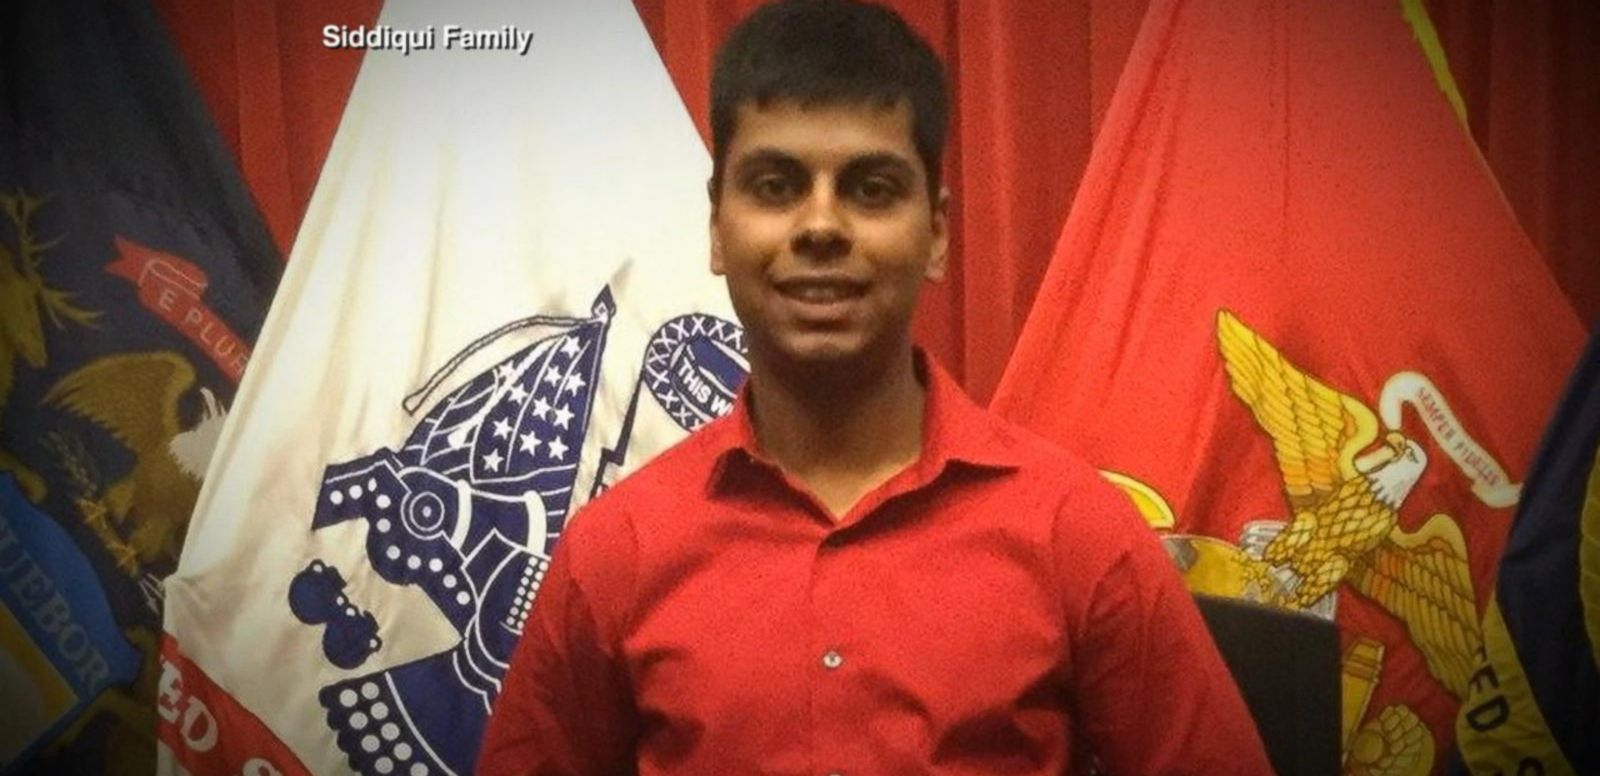 VIDEO: Marine Corps Instructors Under Investigation for Alleged Hazing